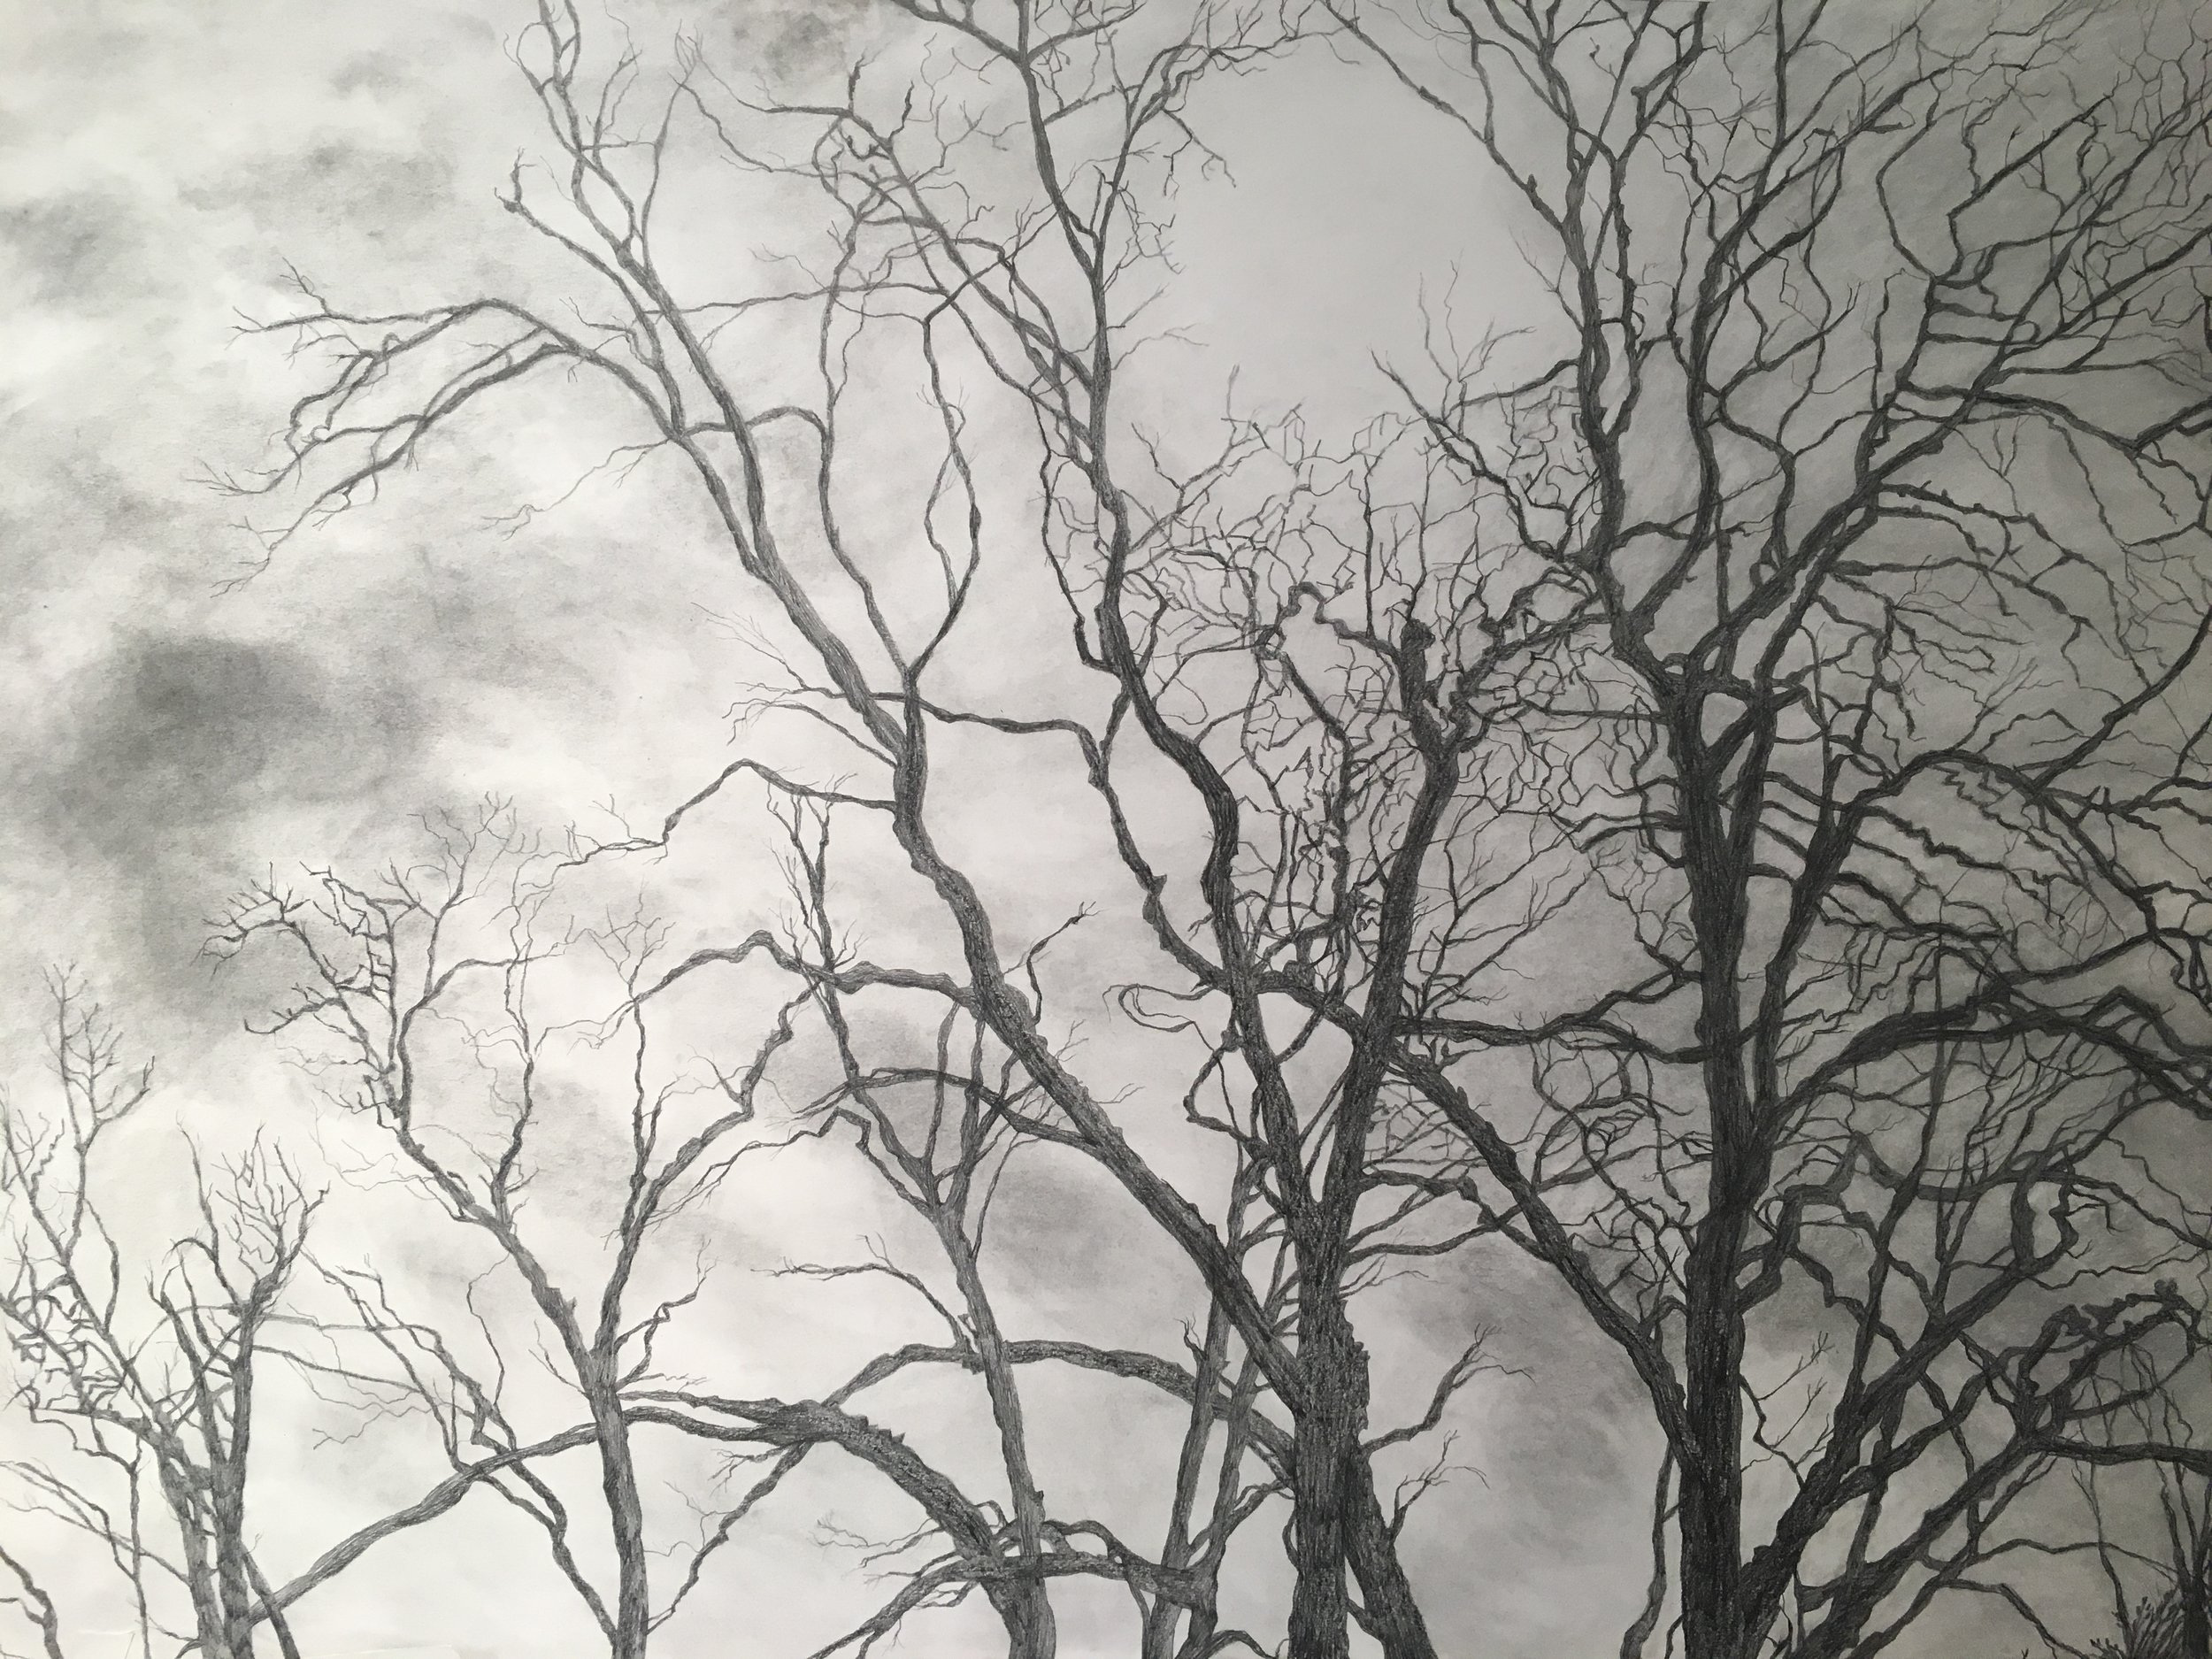 Trees I, 2019, graphite on paper, 44 x 27 in, $3,700